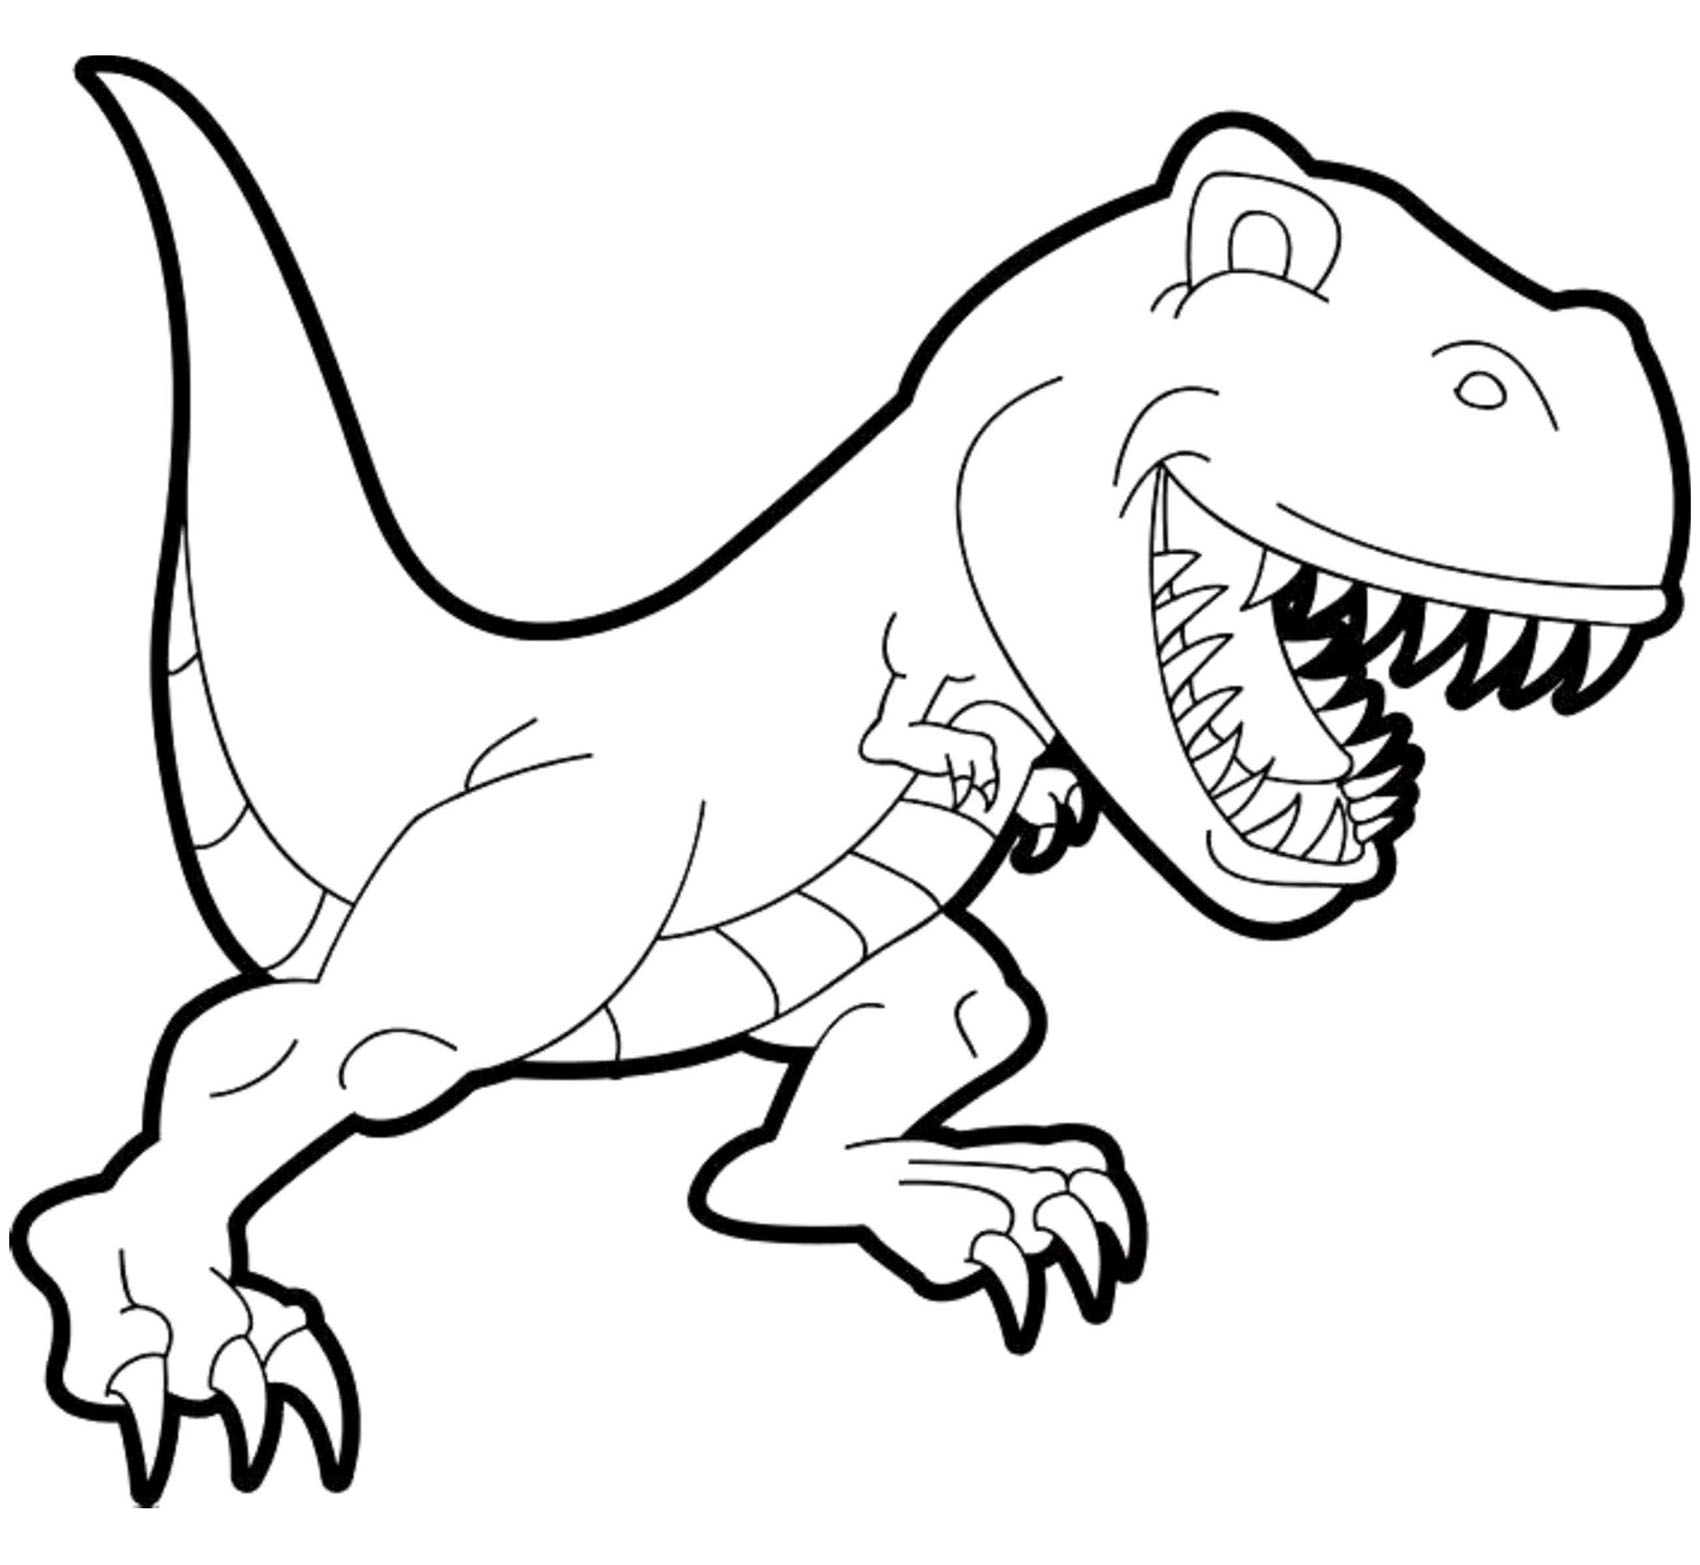 Free Dinosaurs coloring page to print and color, for kids : Tyrannosaur (Cartoon)